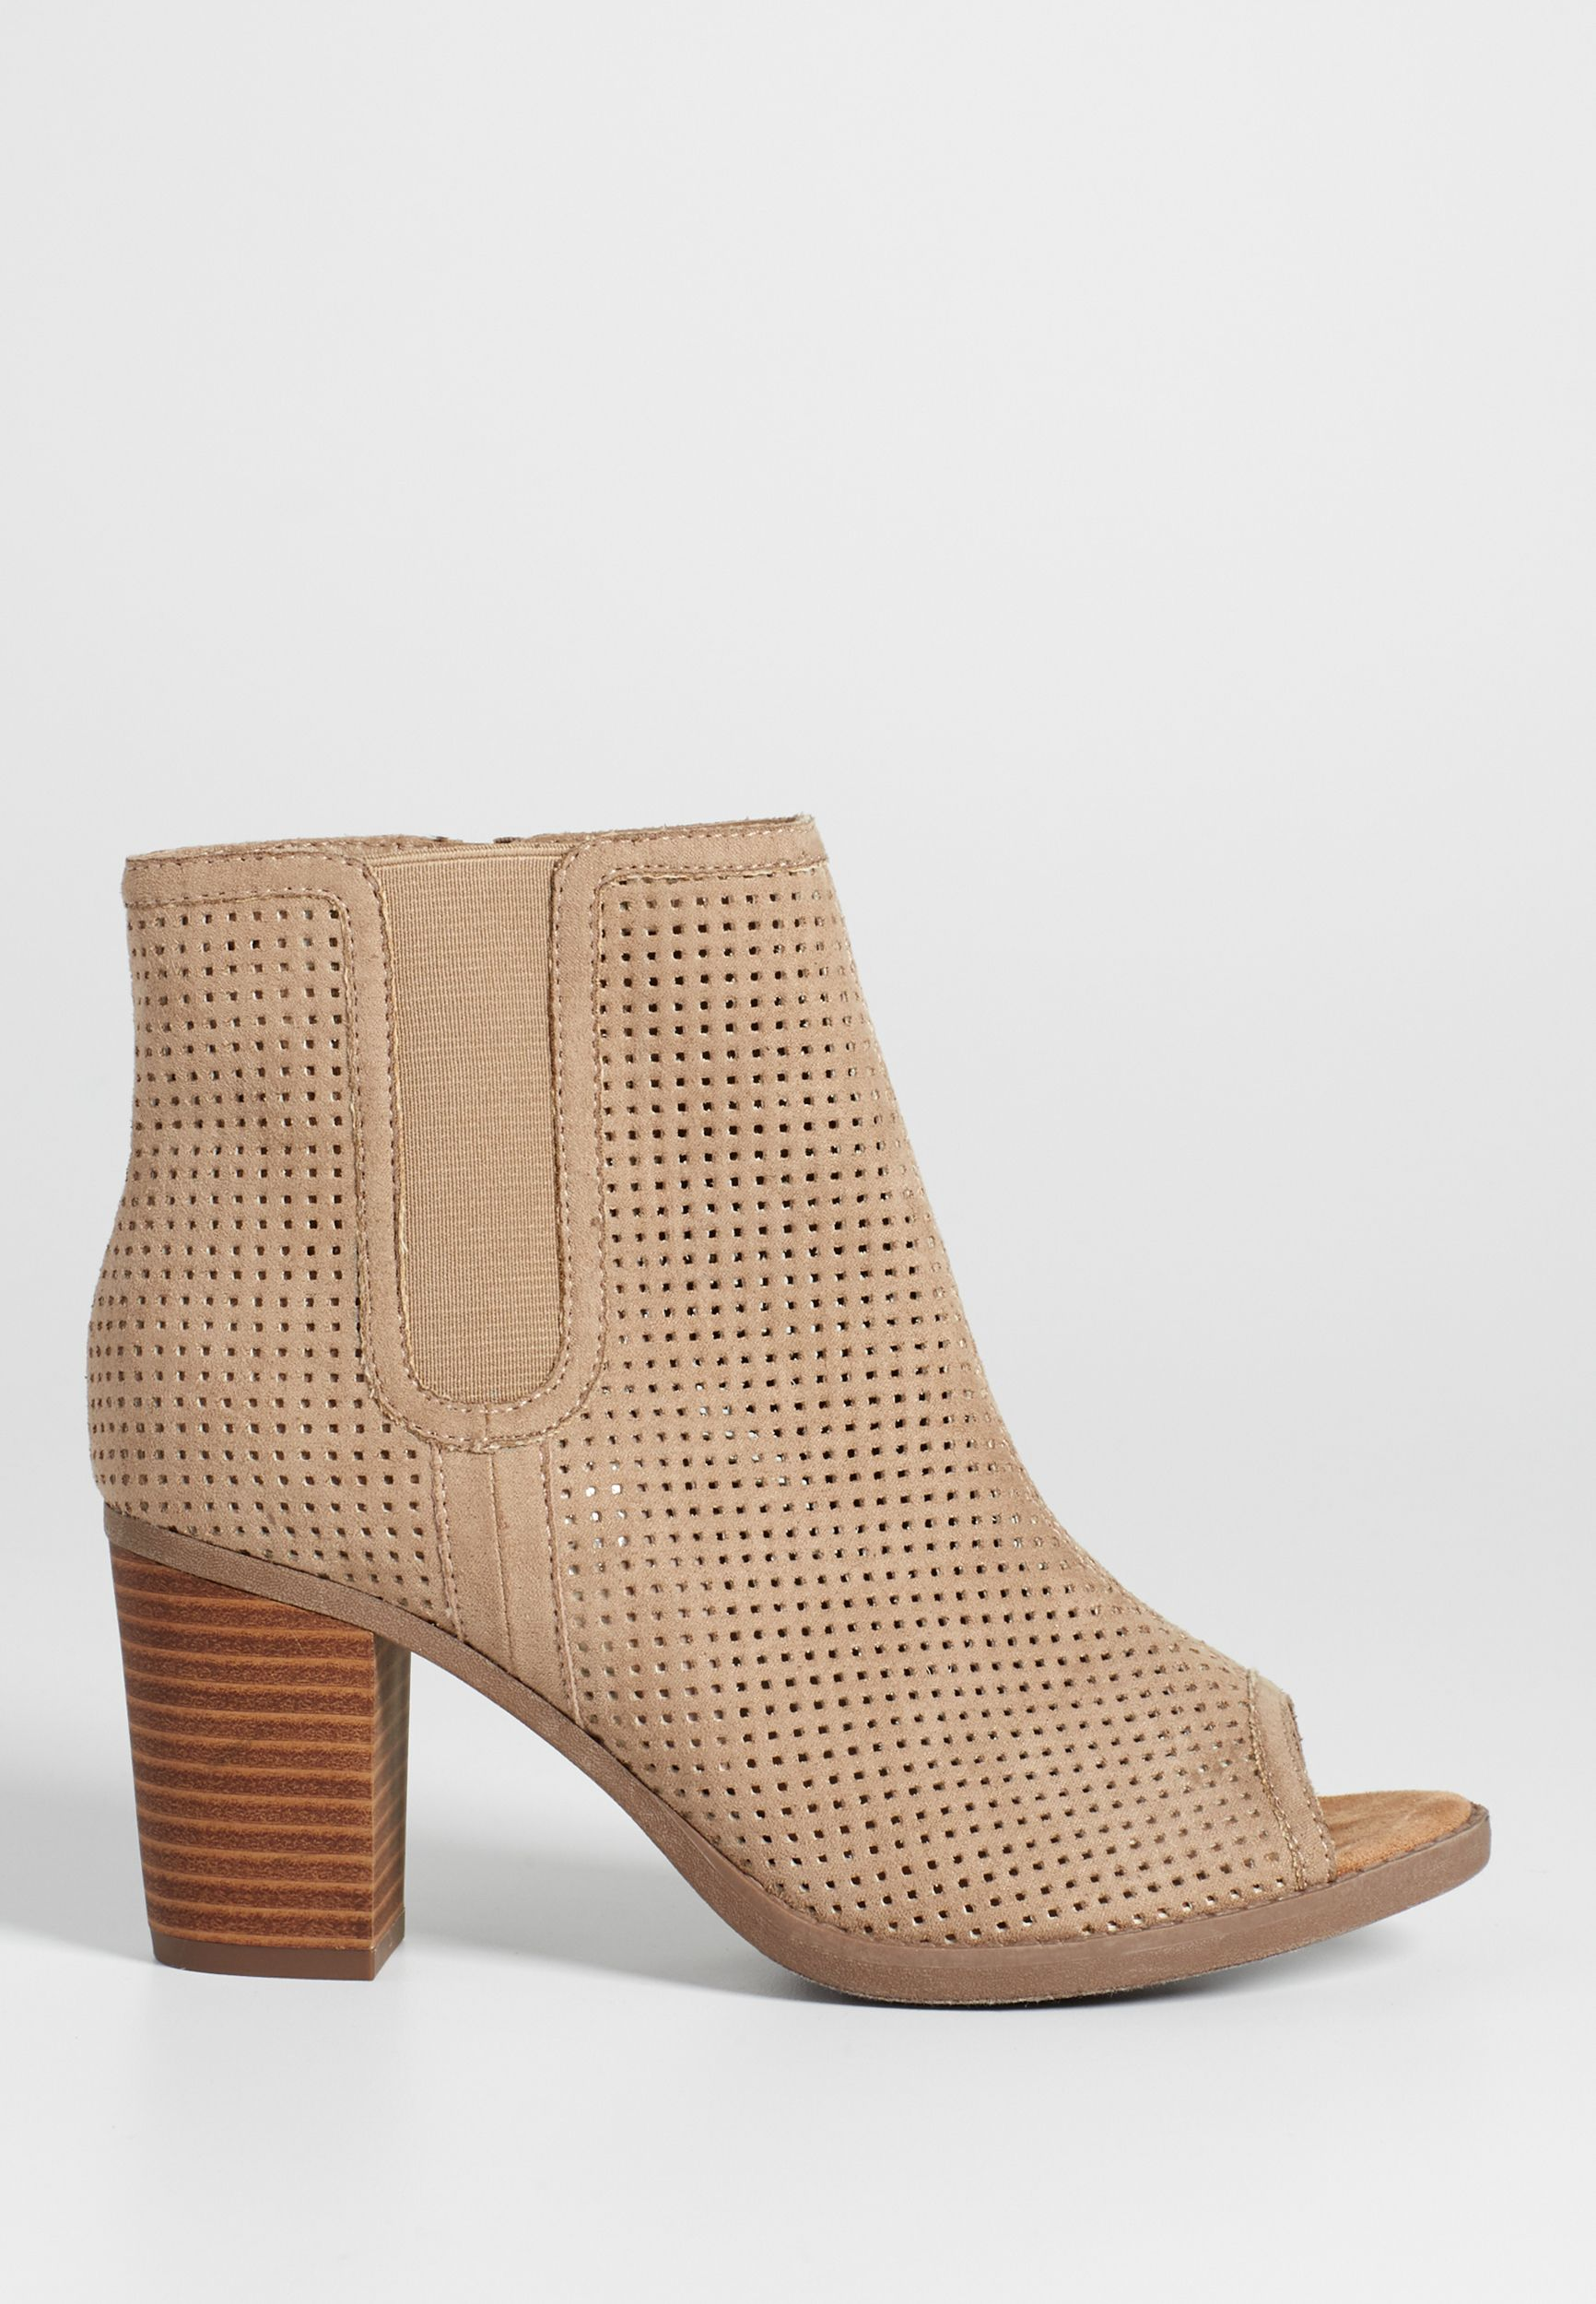 Perforated Faux Suede Booties nbGeZTM2S